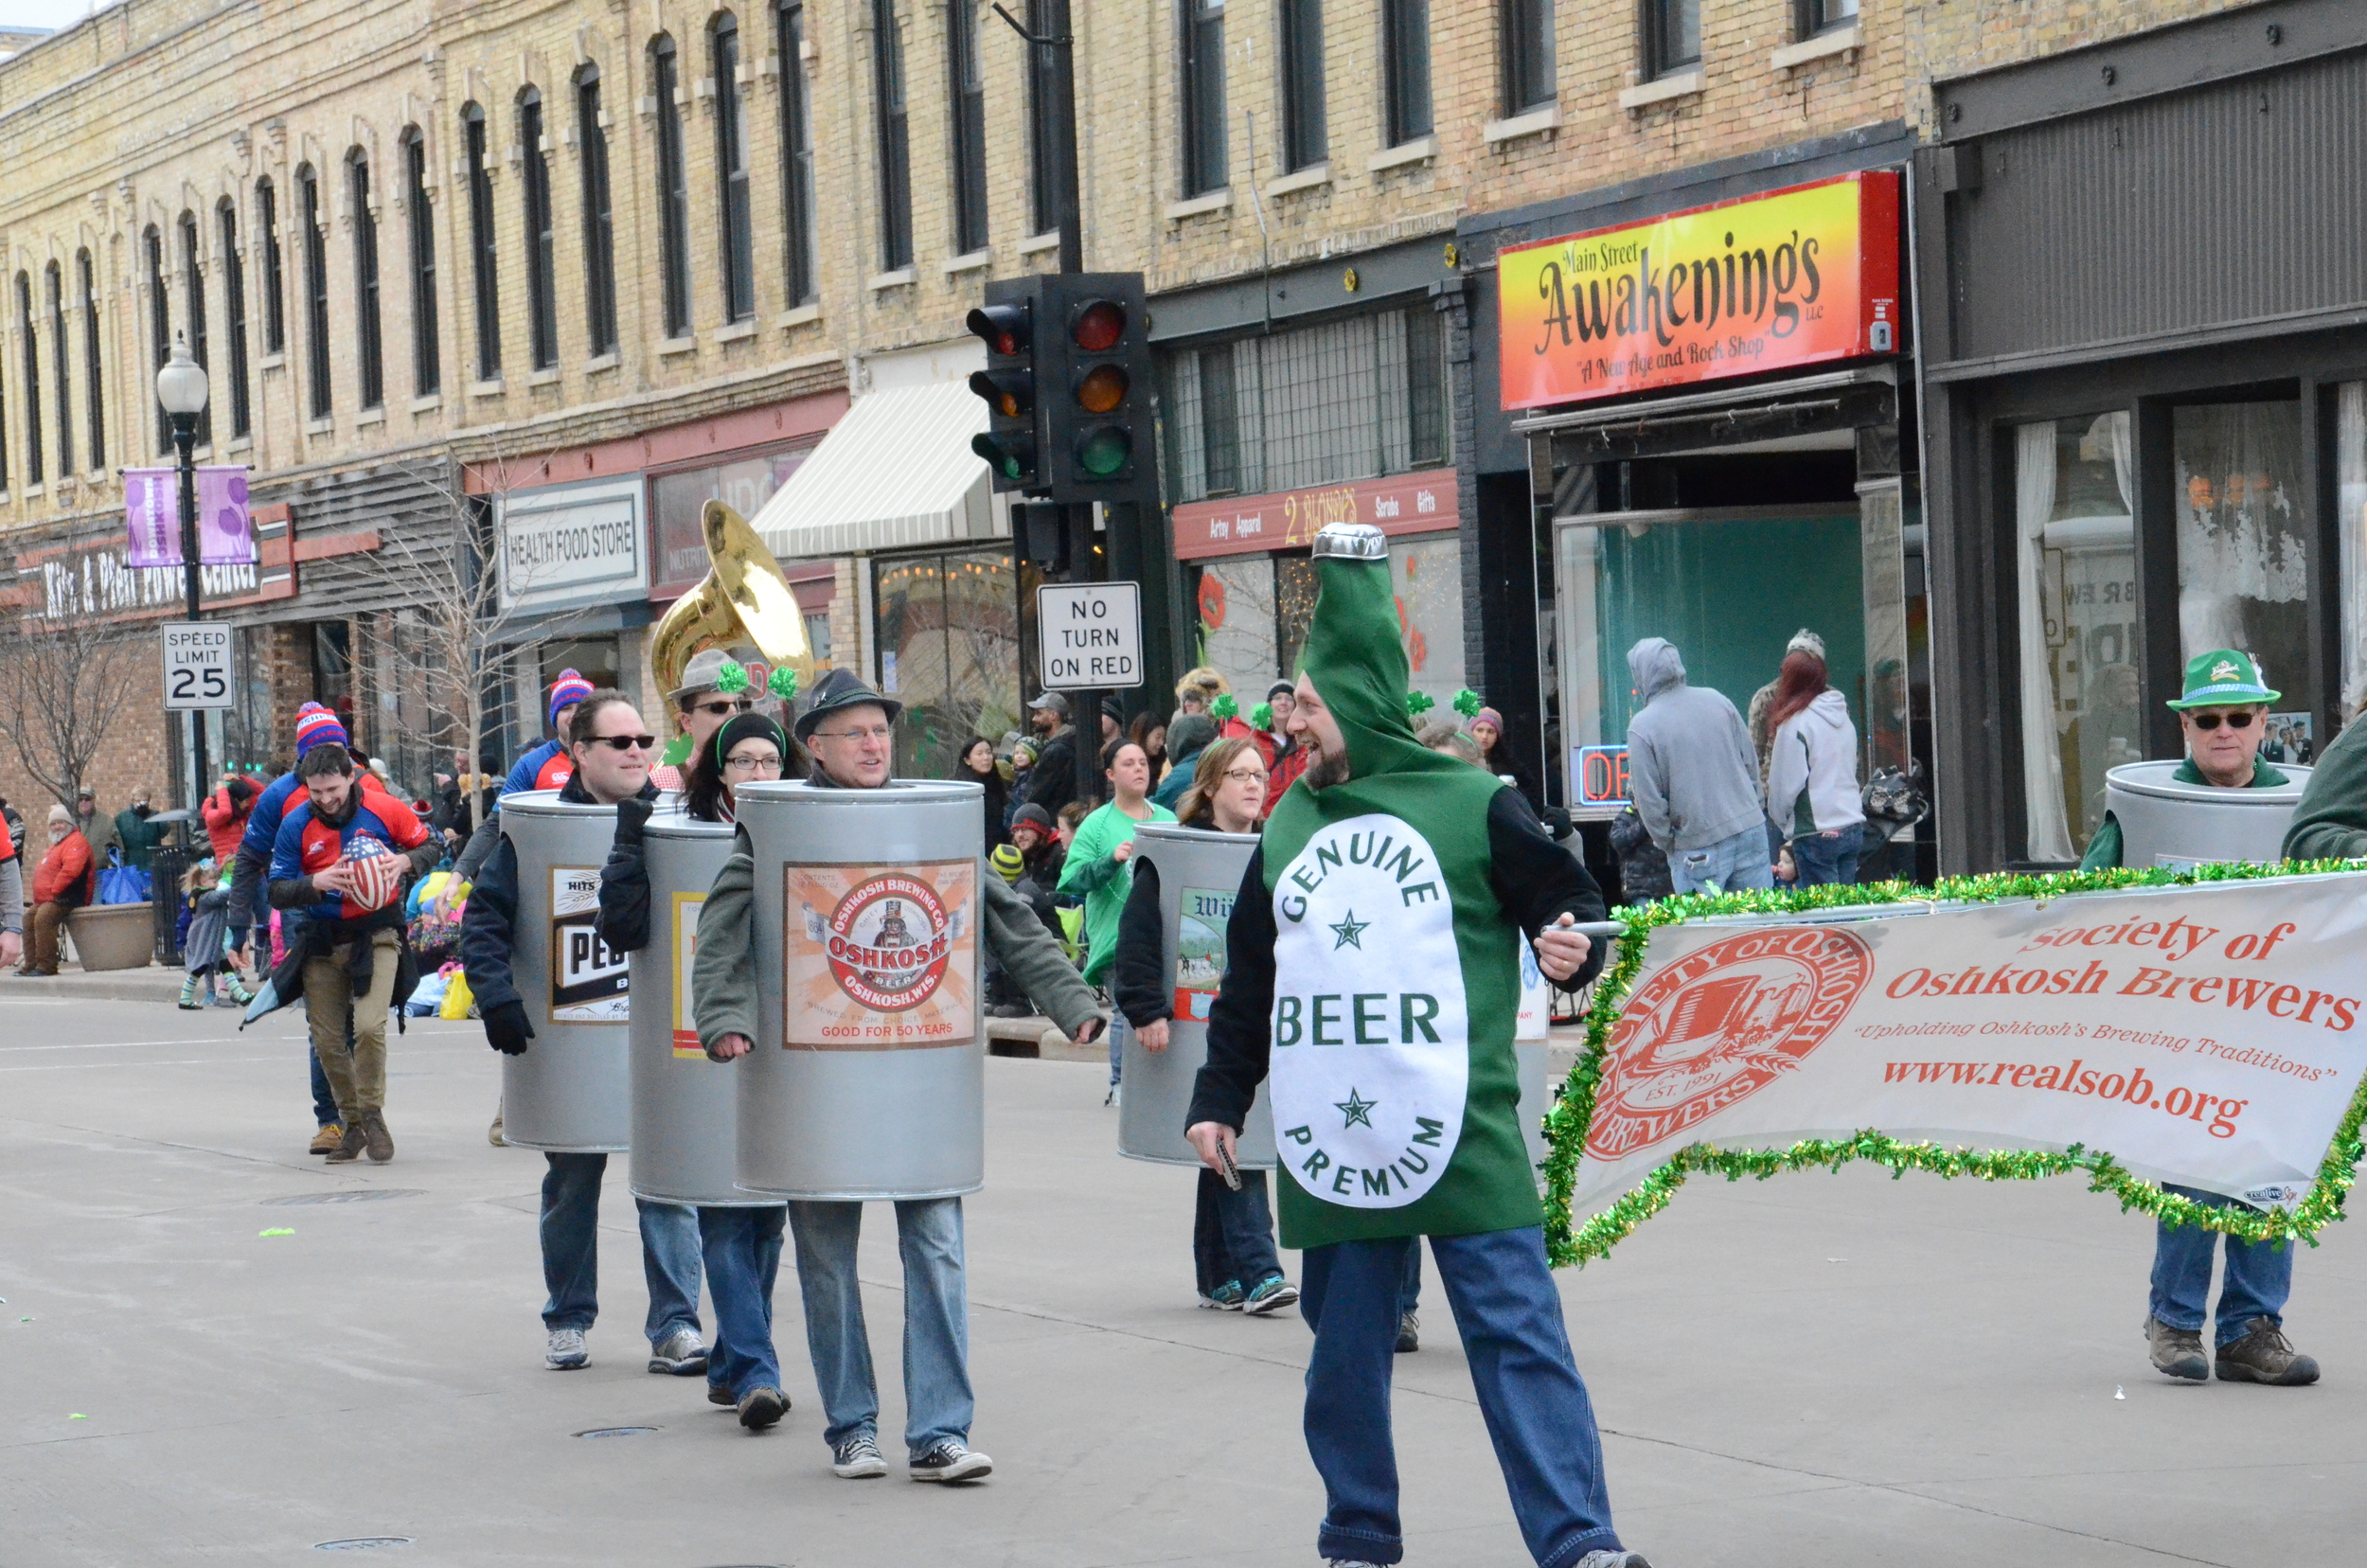 he parade concludes with the Society of Oshkosh Brewers. Each member wears a costume of their favorite brew.